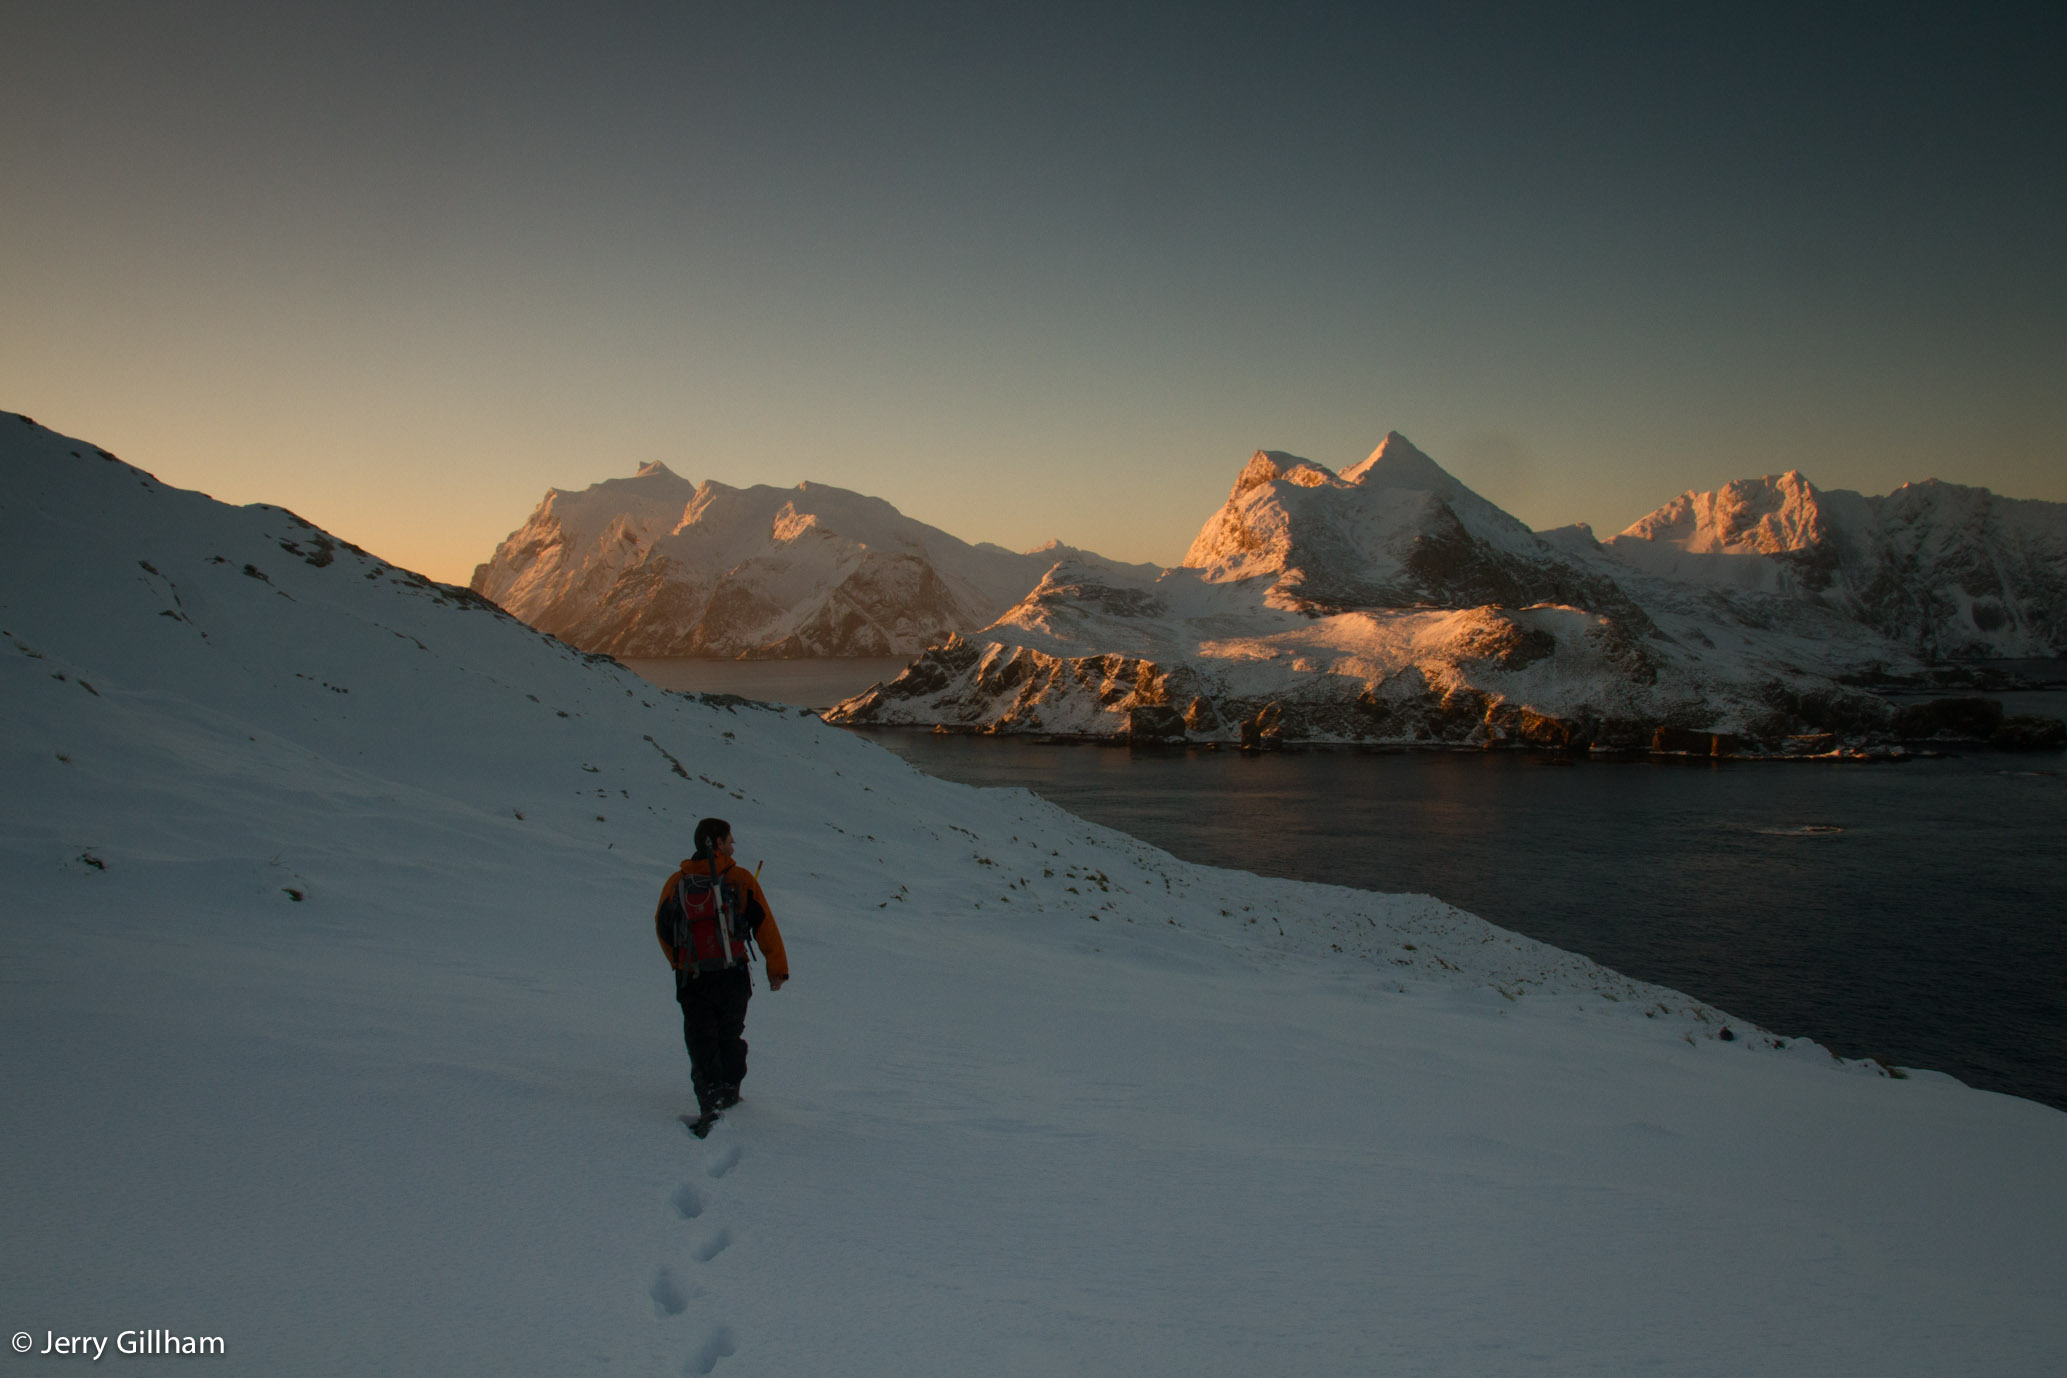 Early morning light catching the South Georgia mainland as we make footprints in the fresh snow.